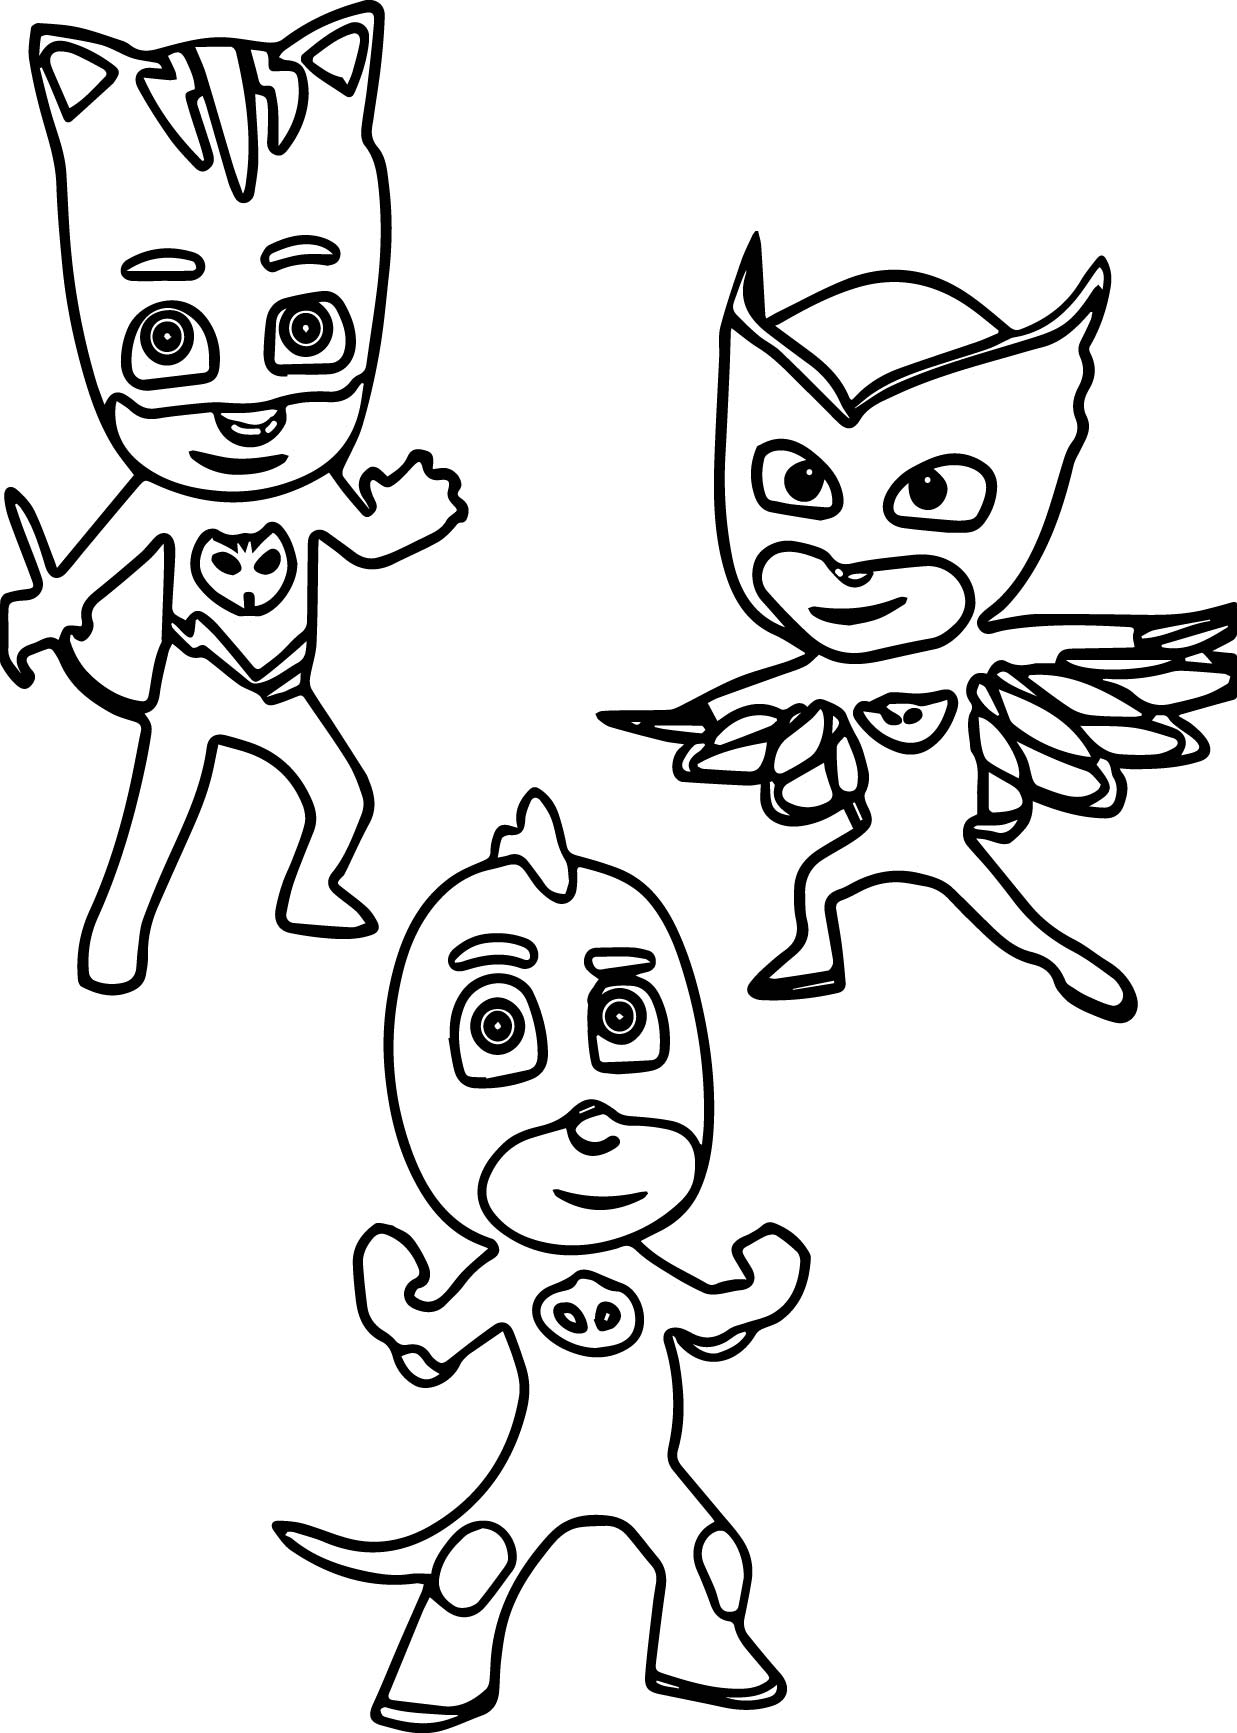 pj masks printable coloring page - Pj Masks Coloring Pages